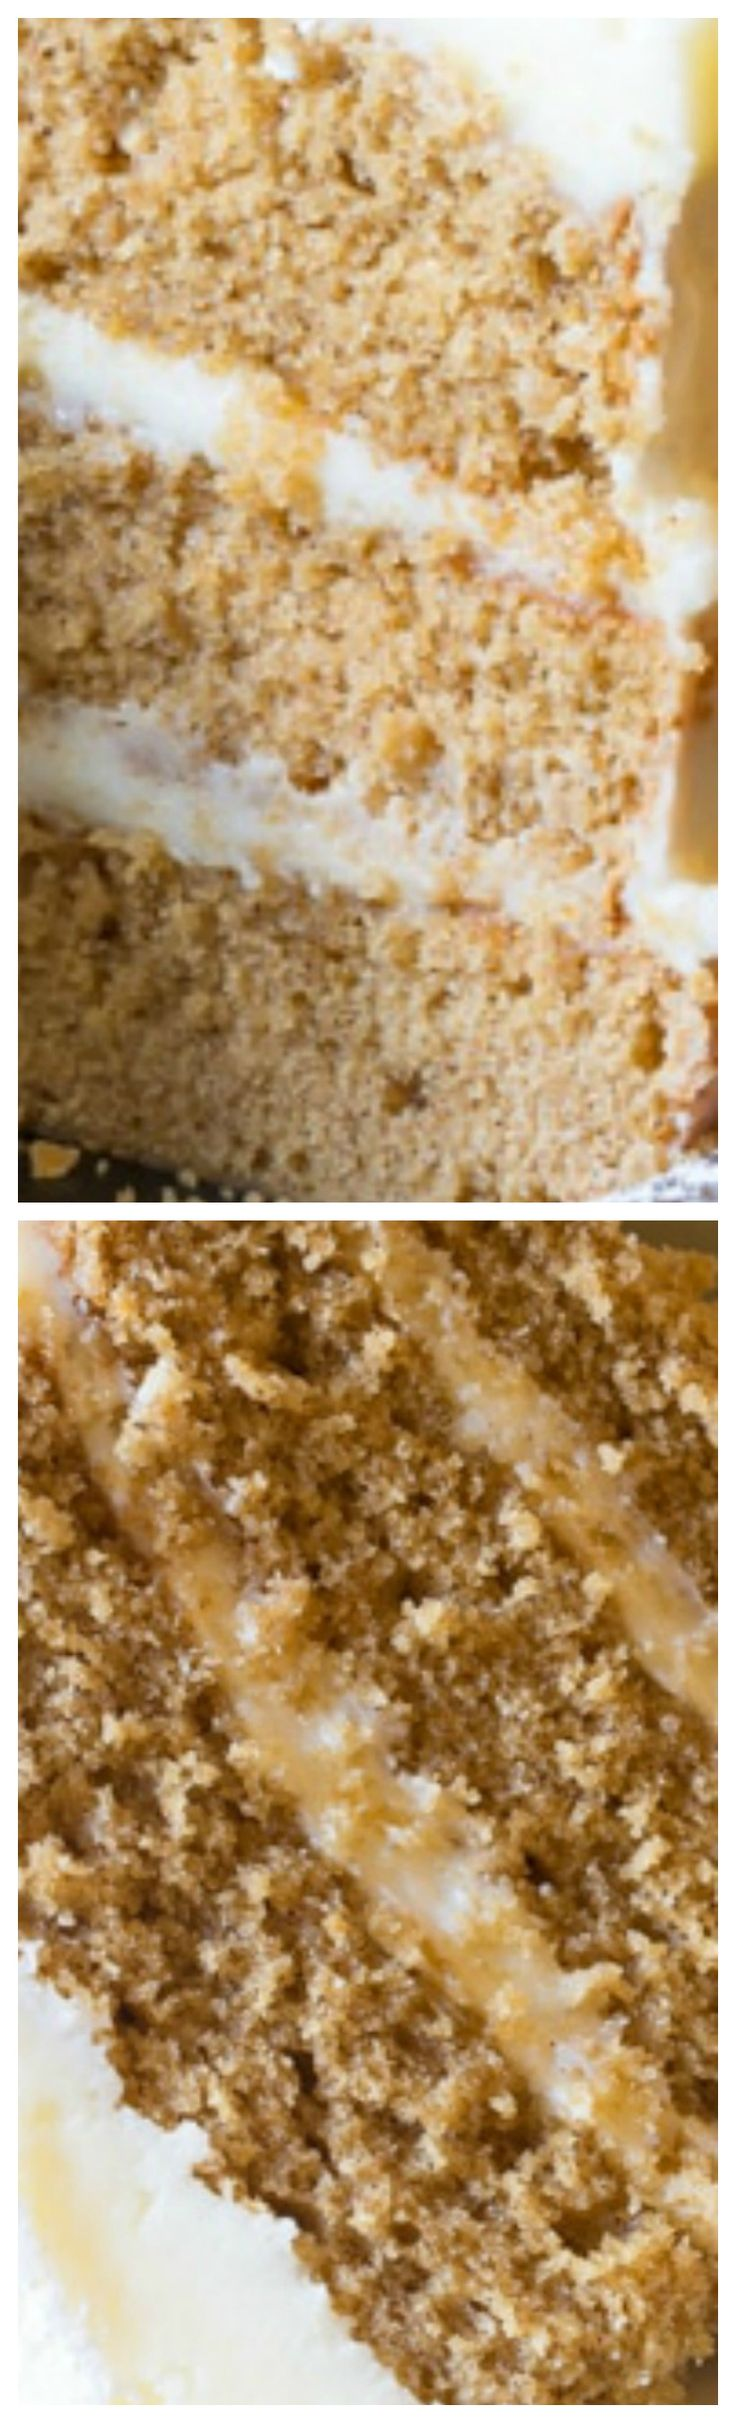 Cinnamon Dolce Latte Cake with Mascarpone Frosting ~ Decadent and ultra moist